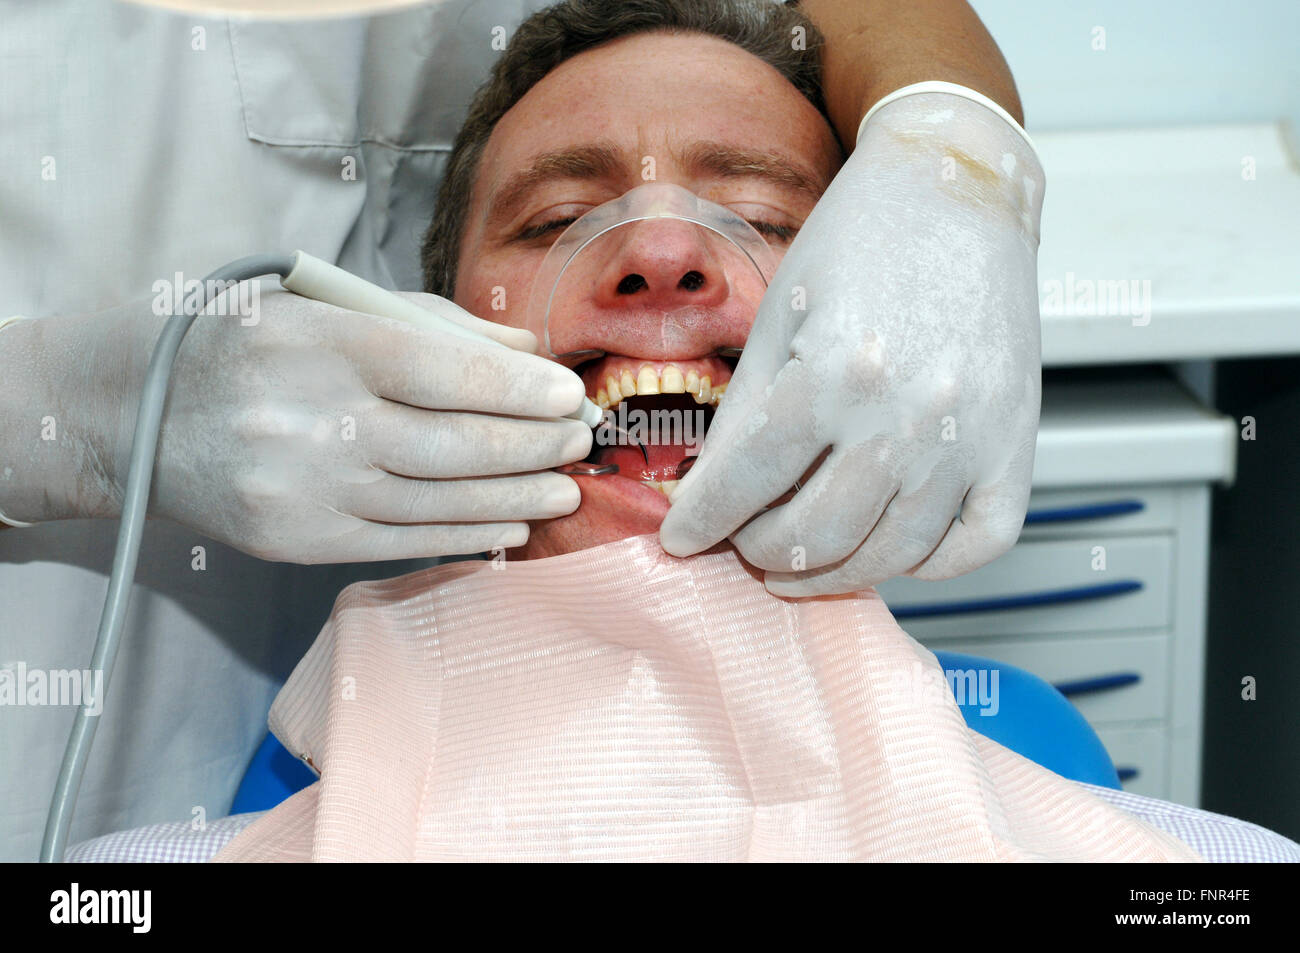 A dentist removing plaque and tartar from a man's teeth to prevent cavities and other peridontal problems - Stock Image